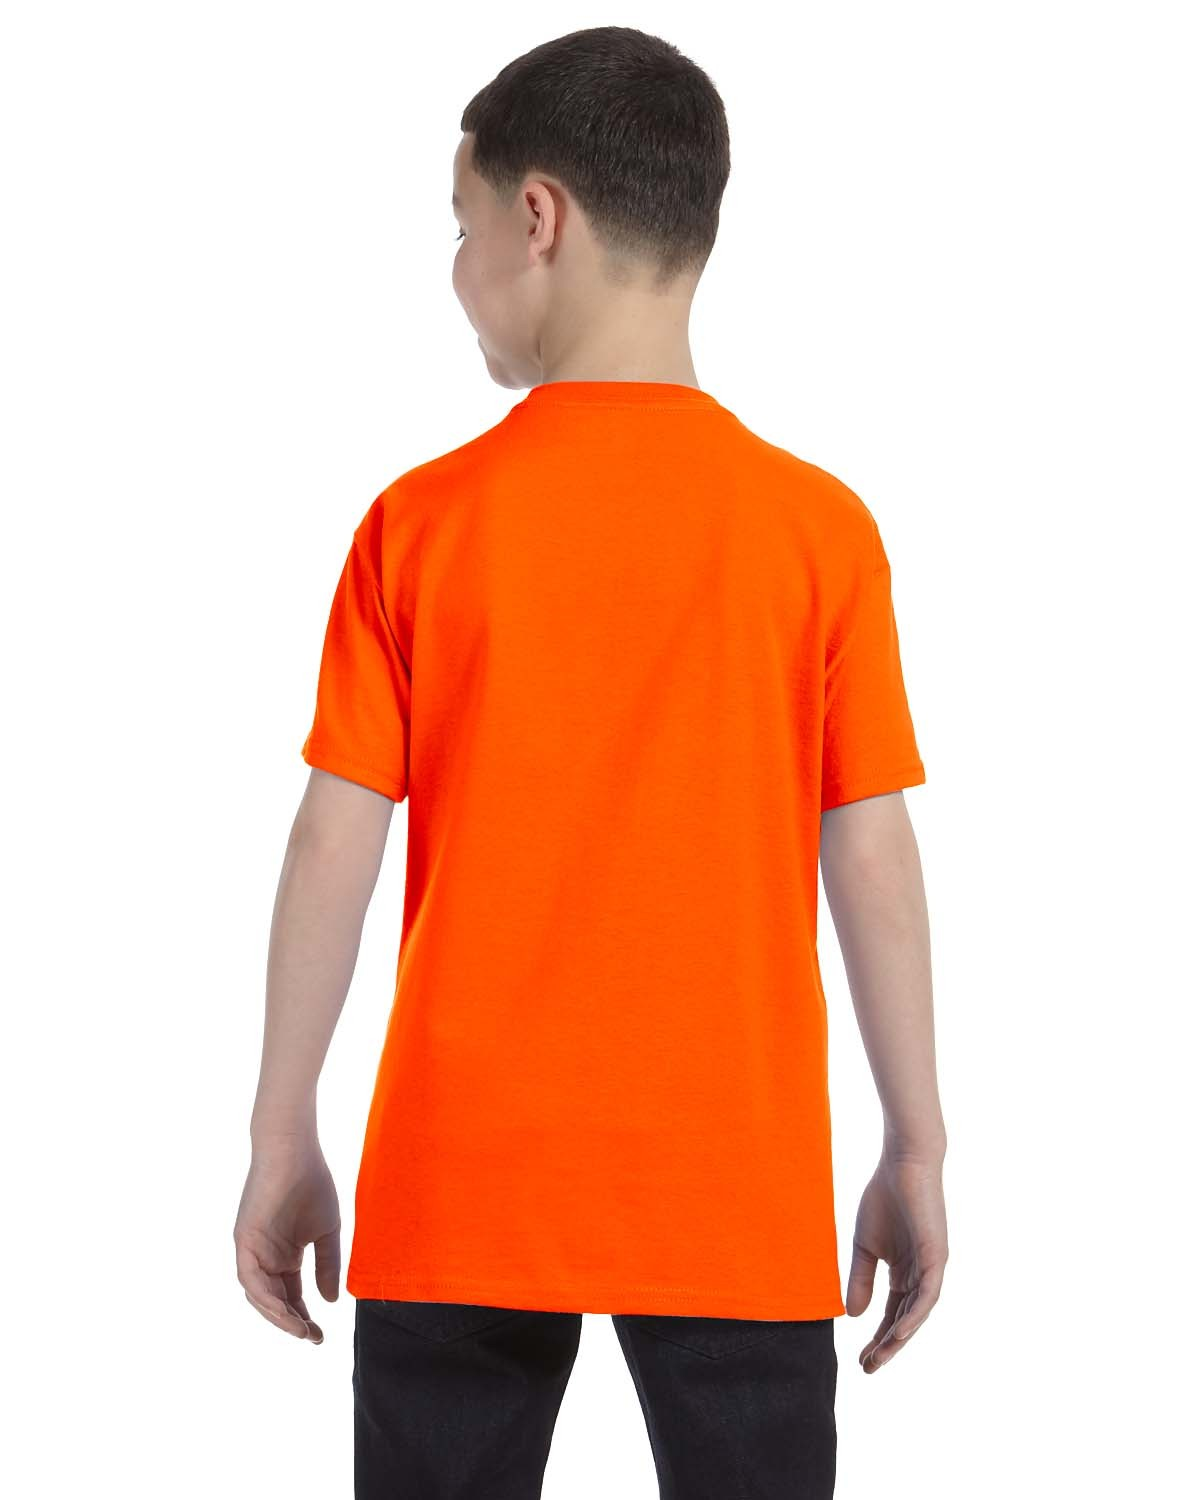 29B Jerzees SAFETY ORANGE